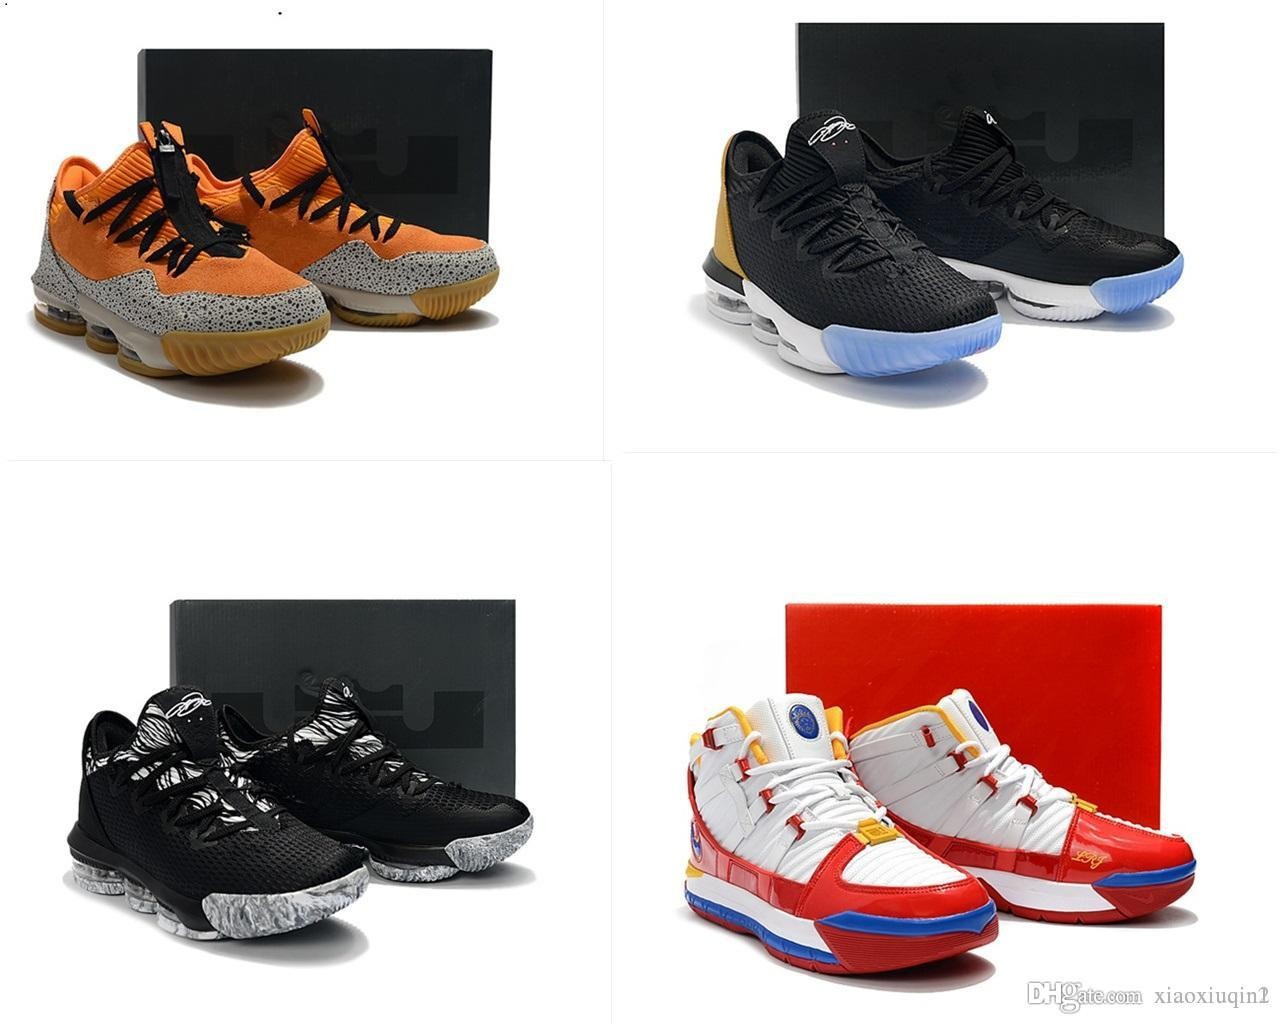 new arrival 26389 b6314 New mens Lebrons 16 XVI low basketball shoes for sale retro BHM Oreo lebron  james 3 boots sneakers with original box size 7-12